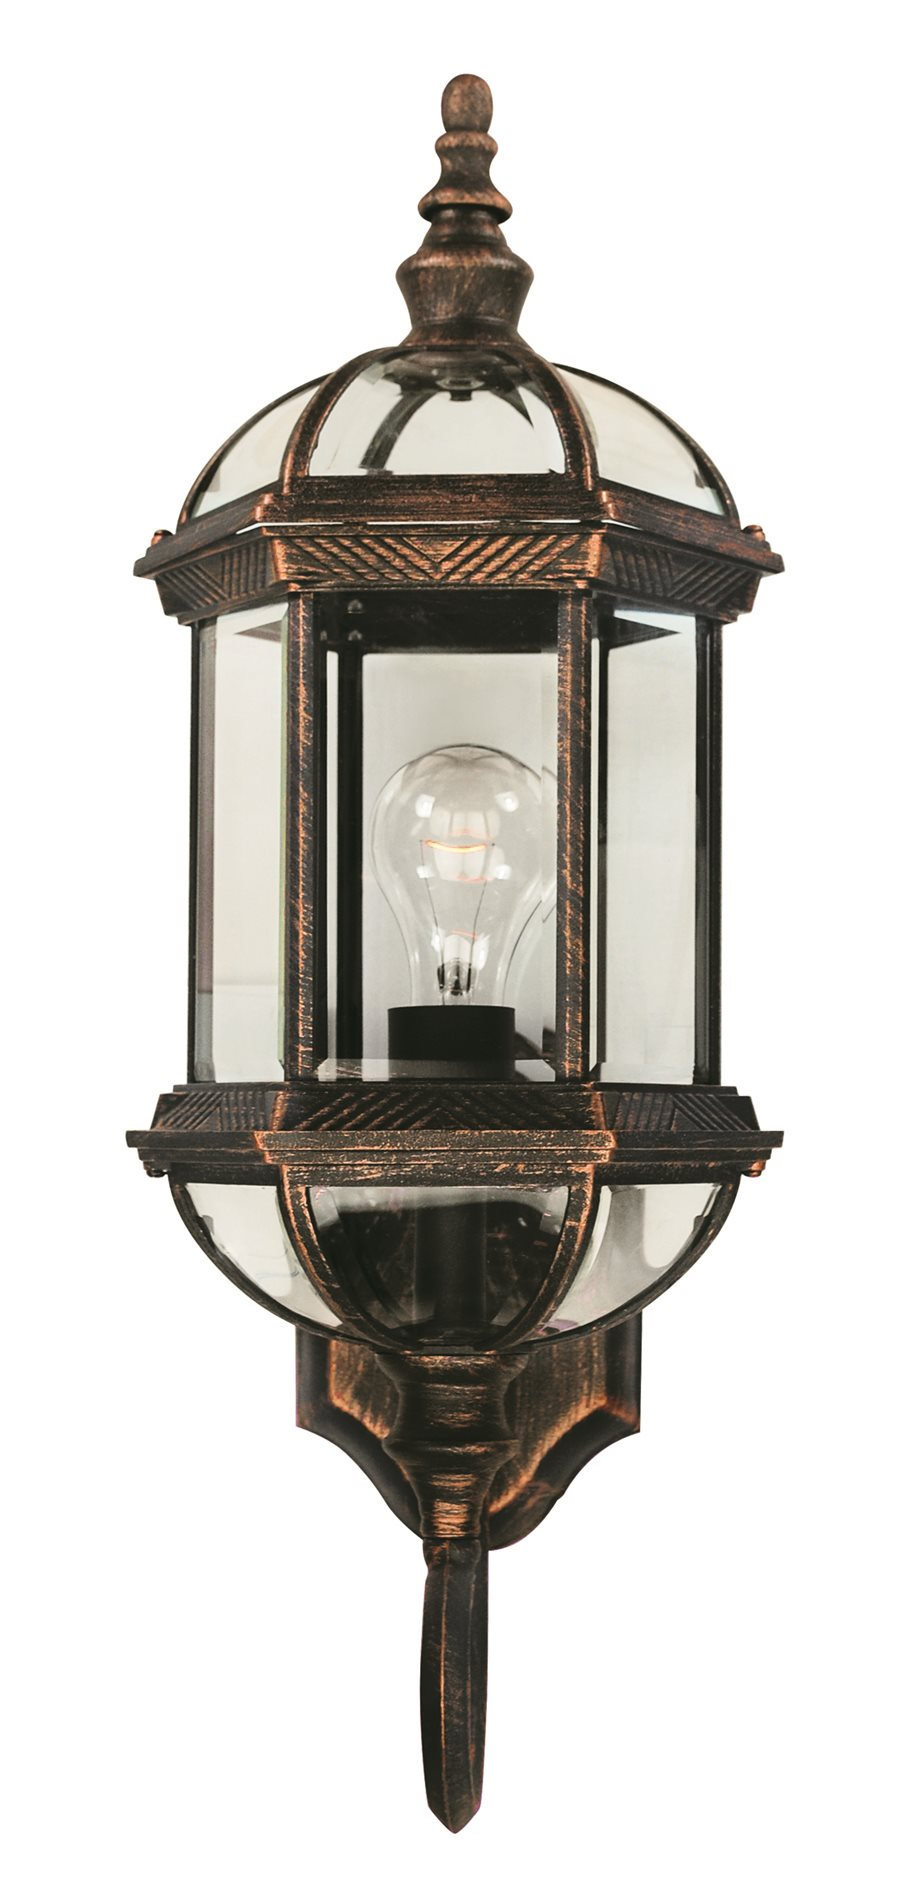 Trans globe lighting 4180 traditional outdoor wall sconce for Outdoor sconce lighting fixtures